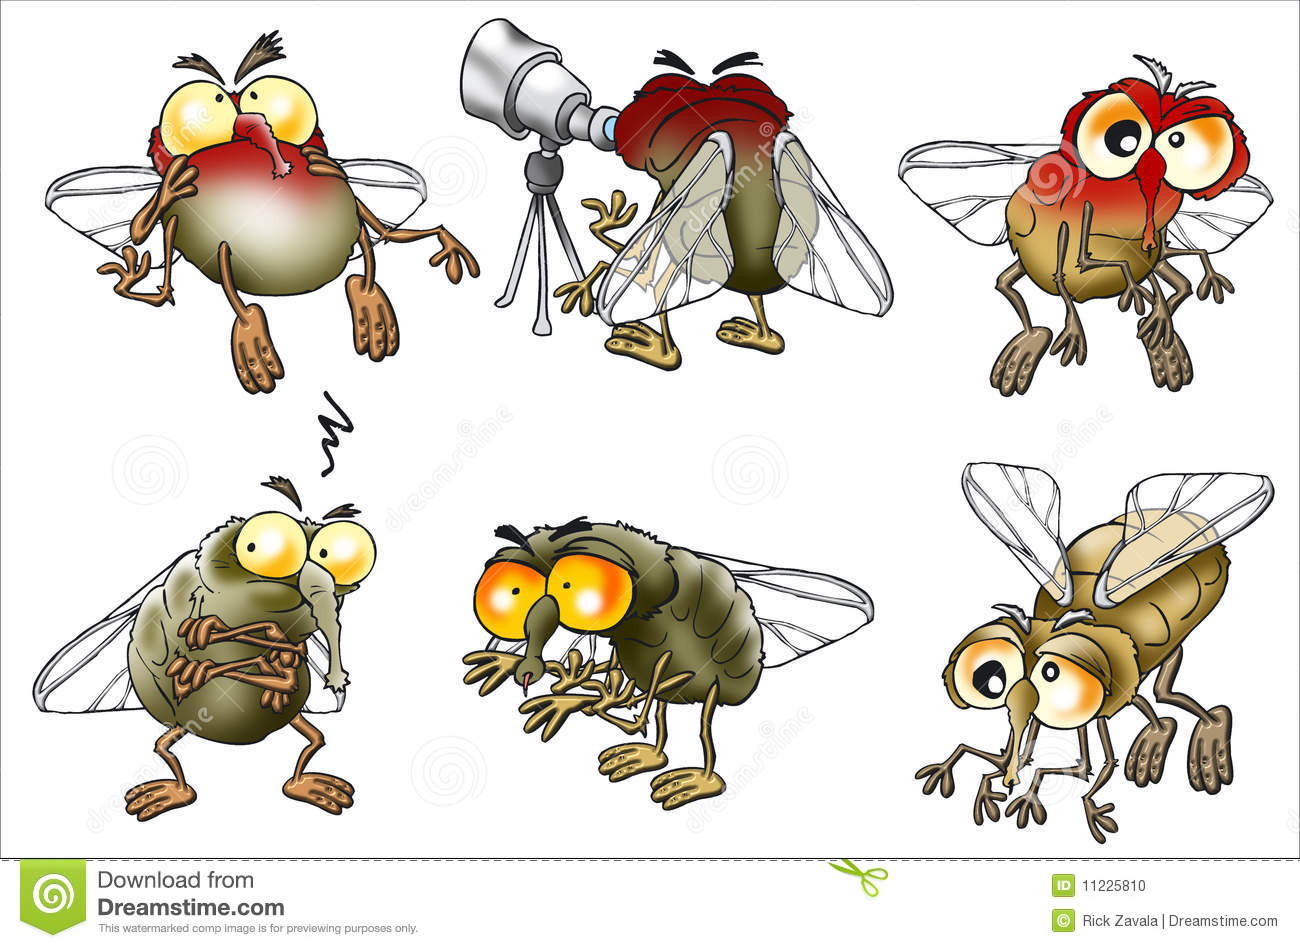 fruit fly clipart - photo #45